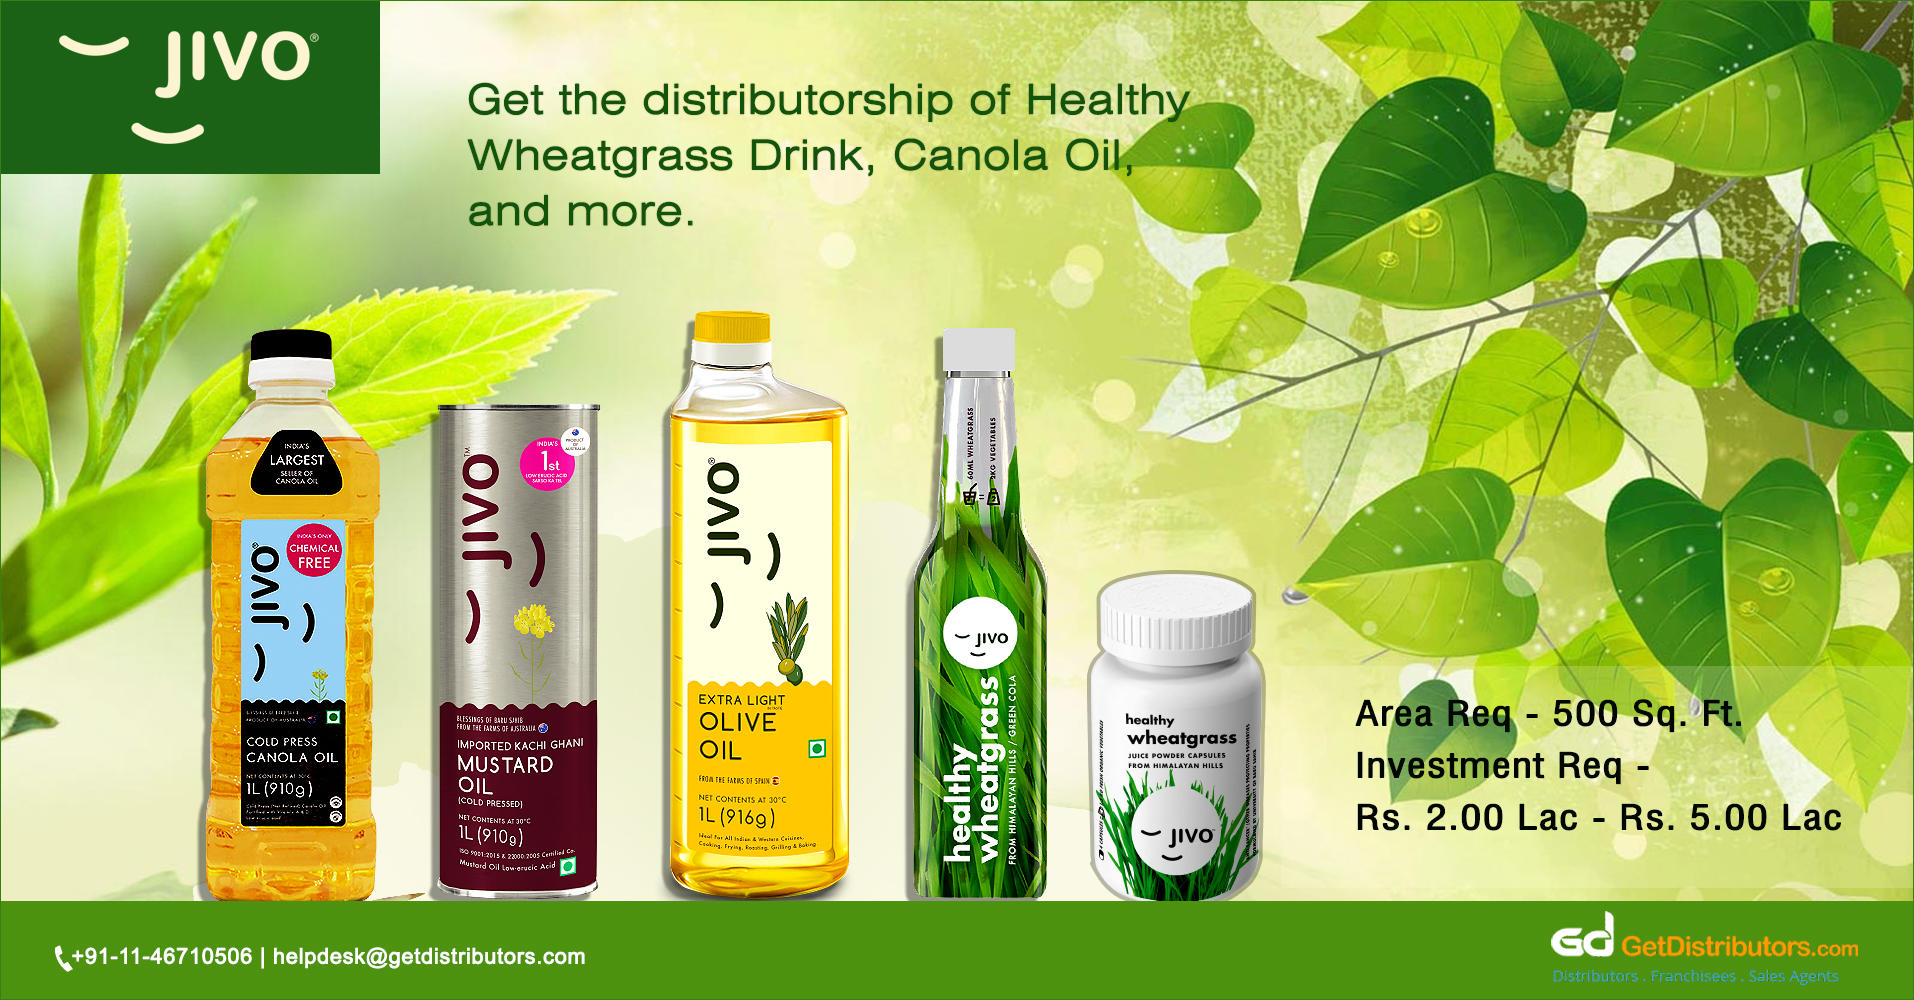 Offering Best Quality Edible Oils And Health Drink Items At Affordable Price